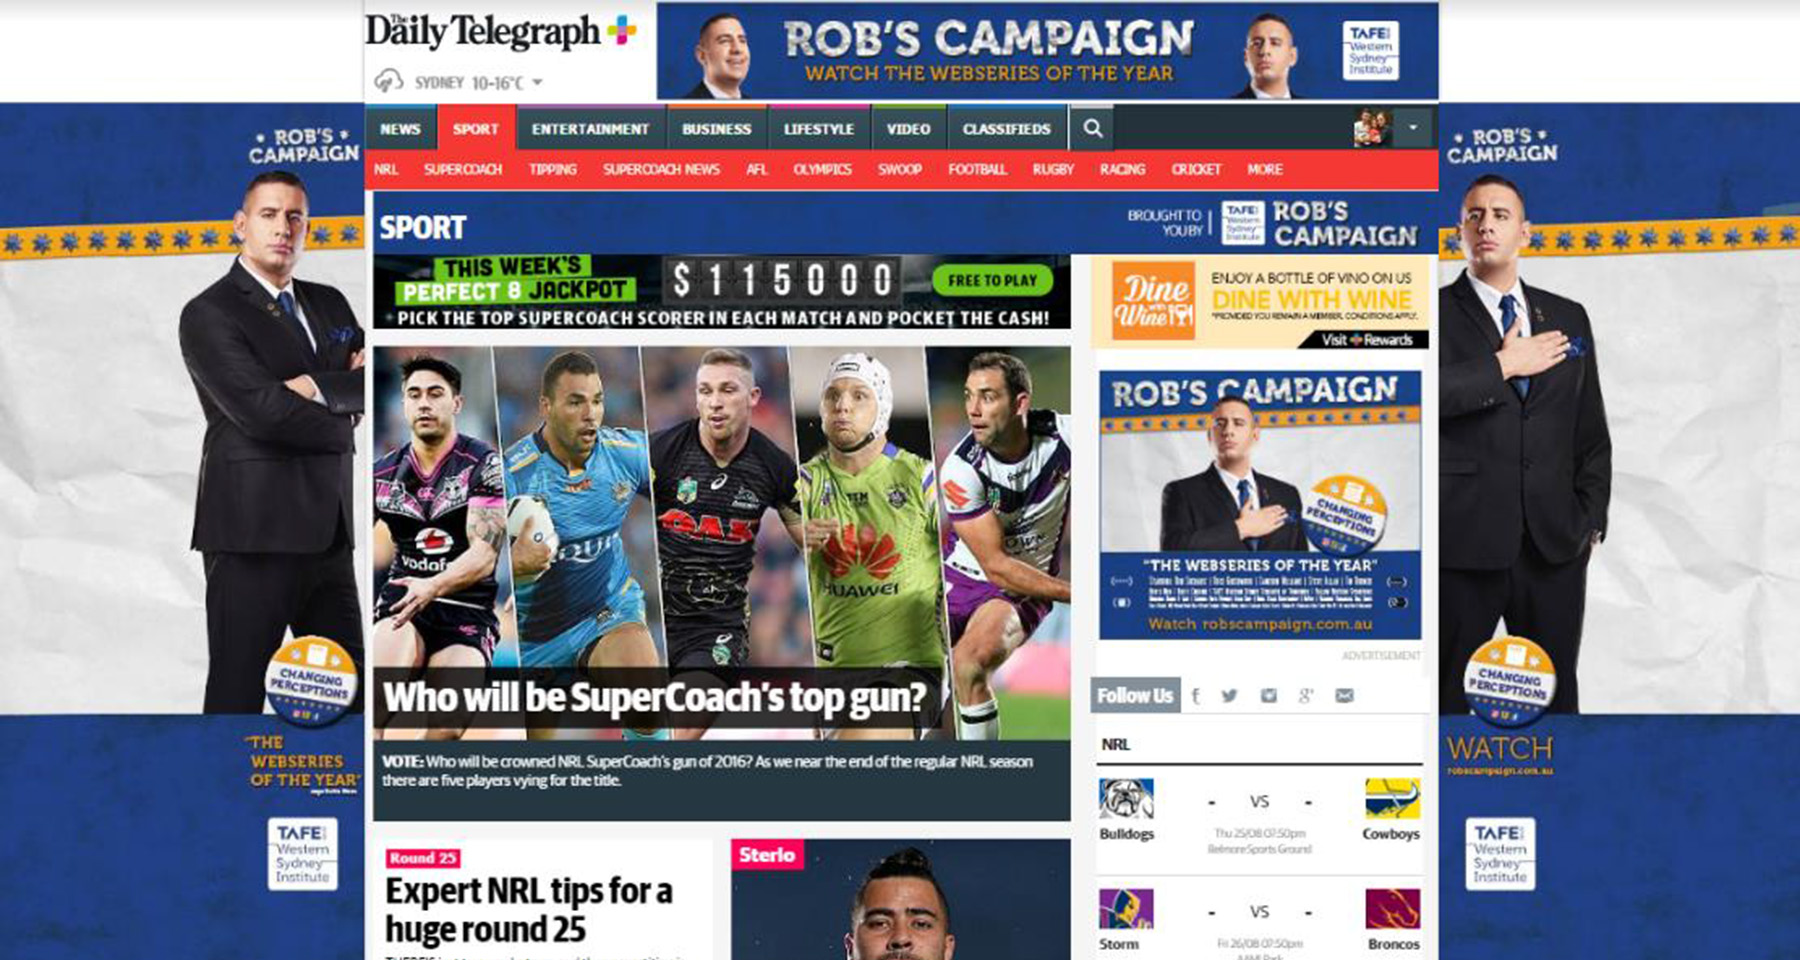 News Corp Australia video campaign garners attention for local university